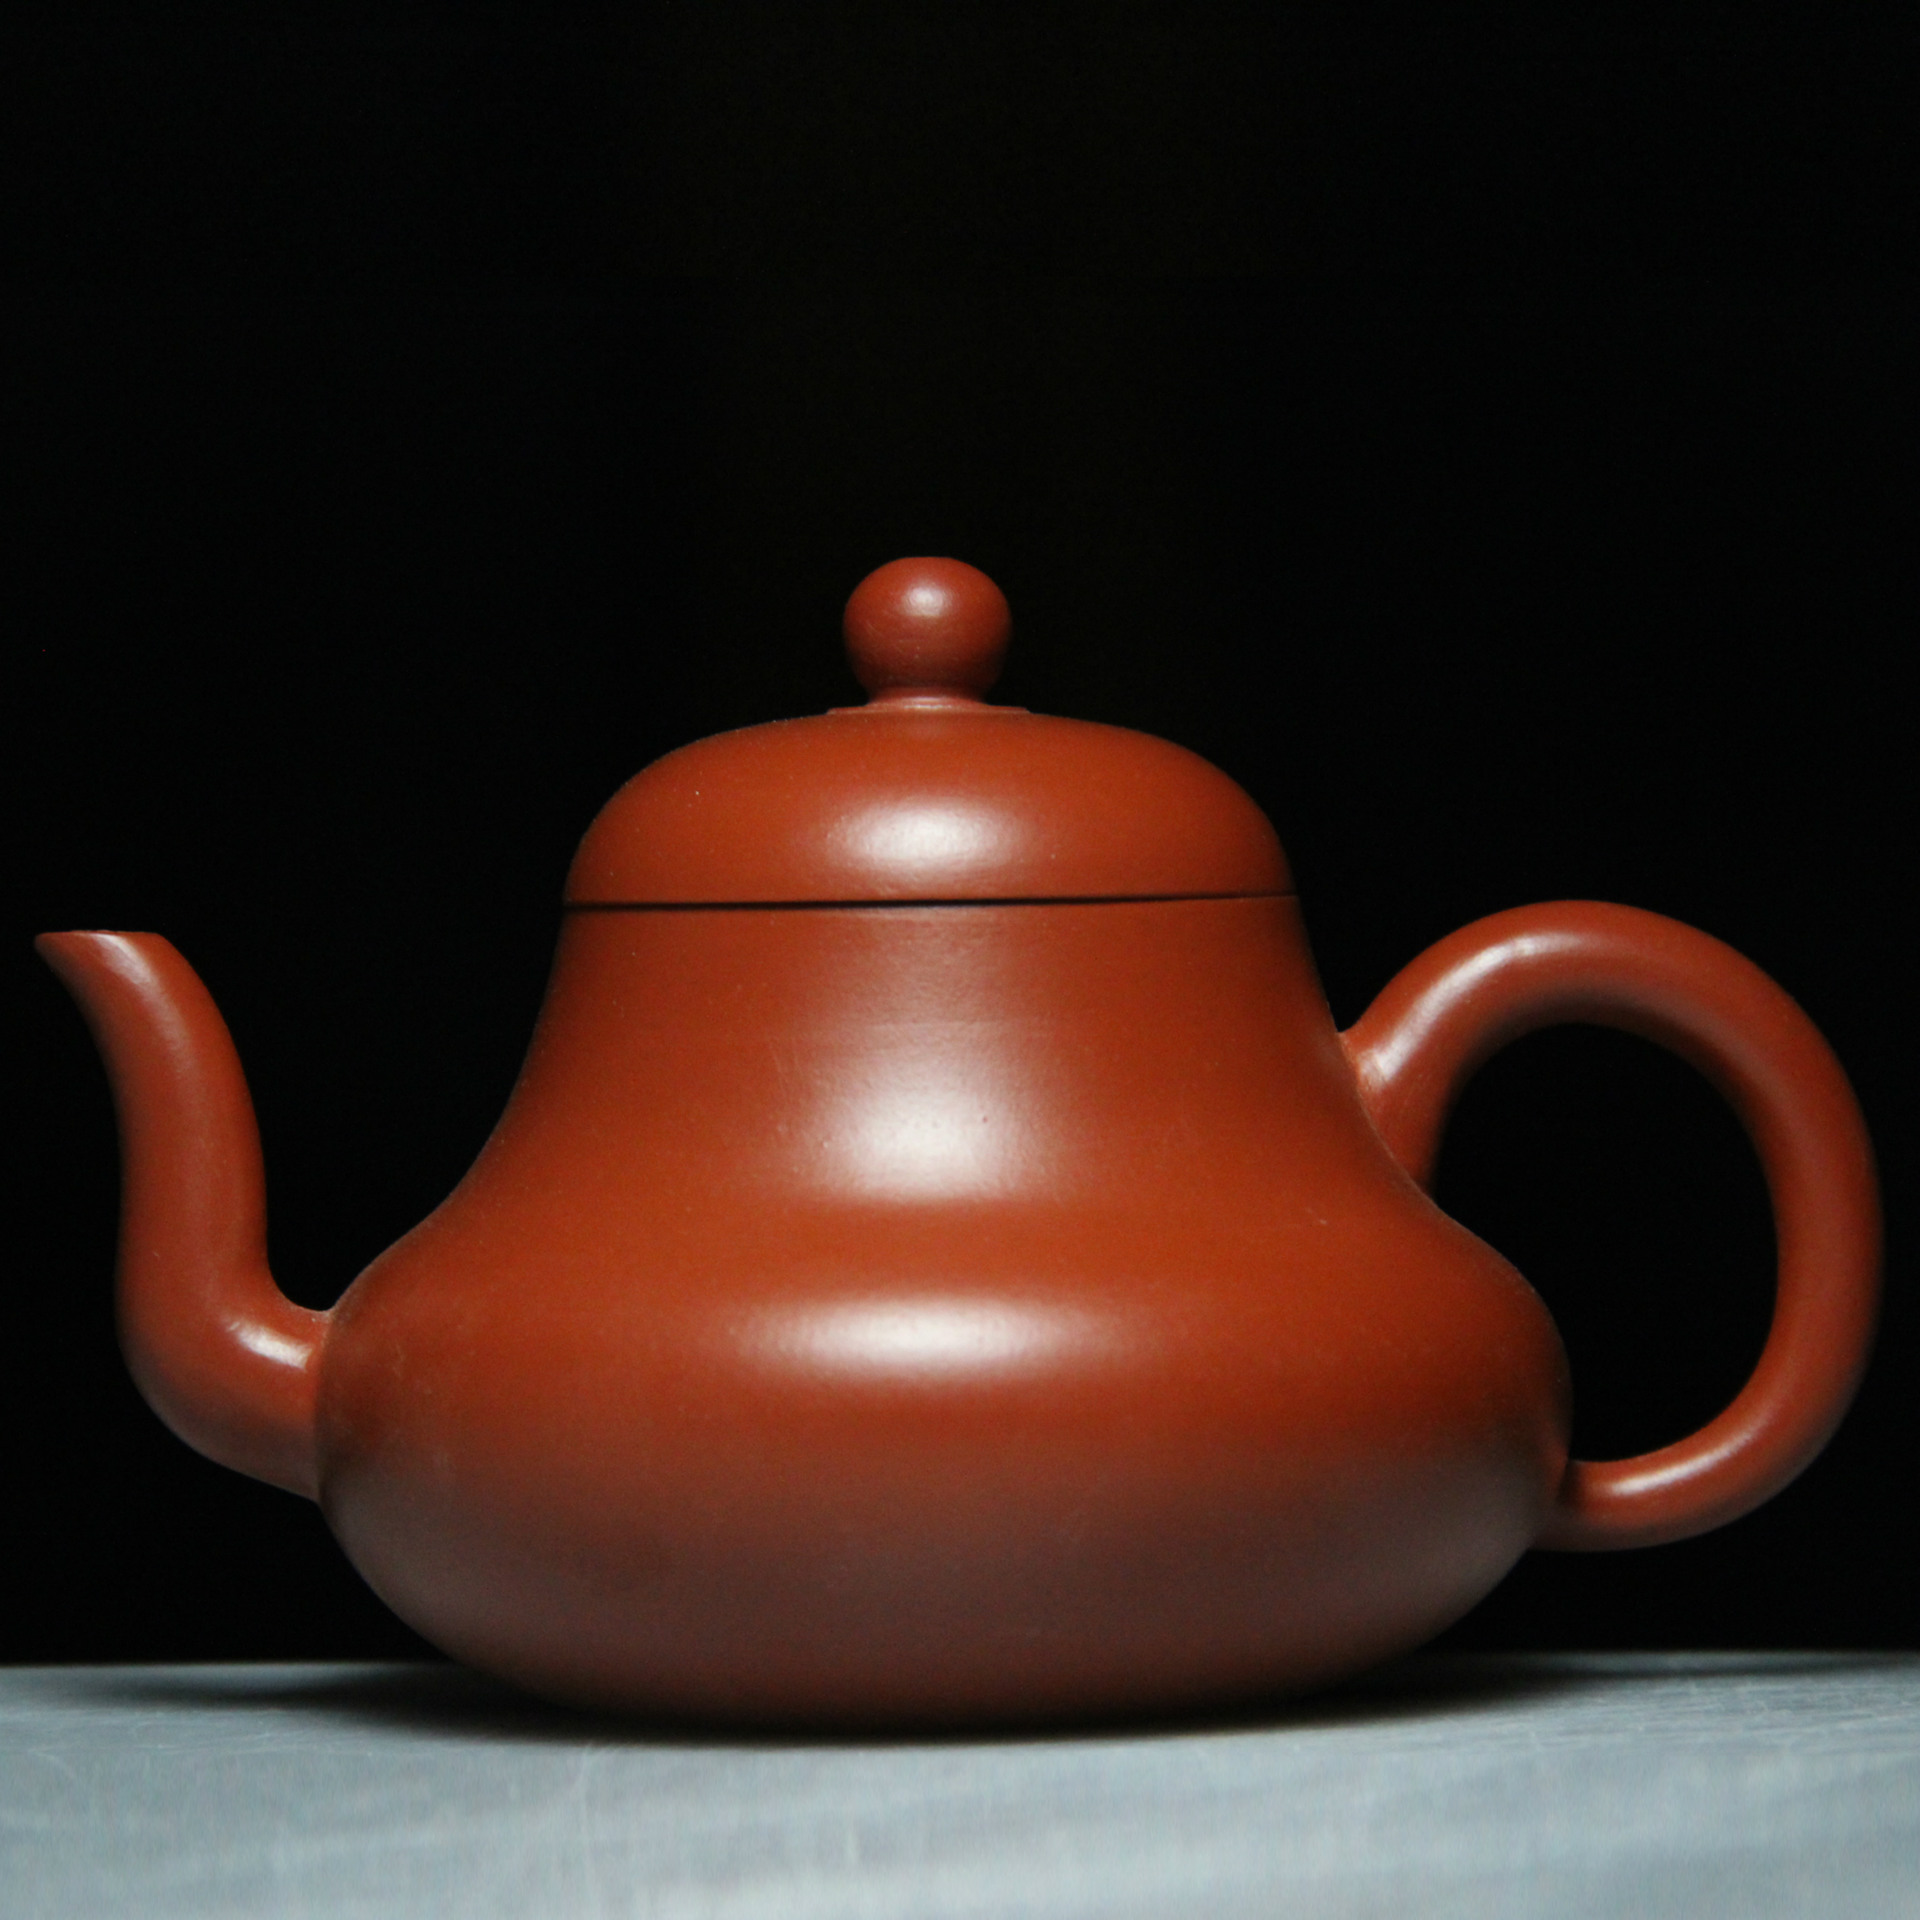 authentic Yixing teapot famous handmade teapot gold ore Zhu mud abalone POTauthentic Yixing teapot famous handmade teapot gold ore Zhu mud abalone POT